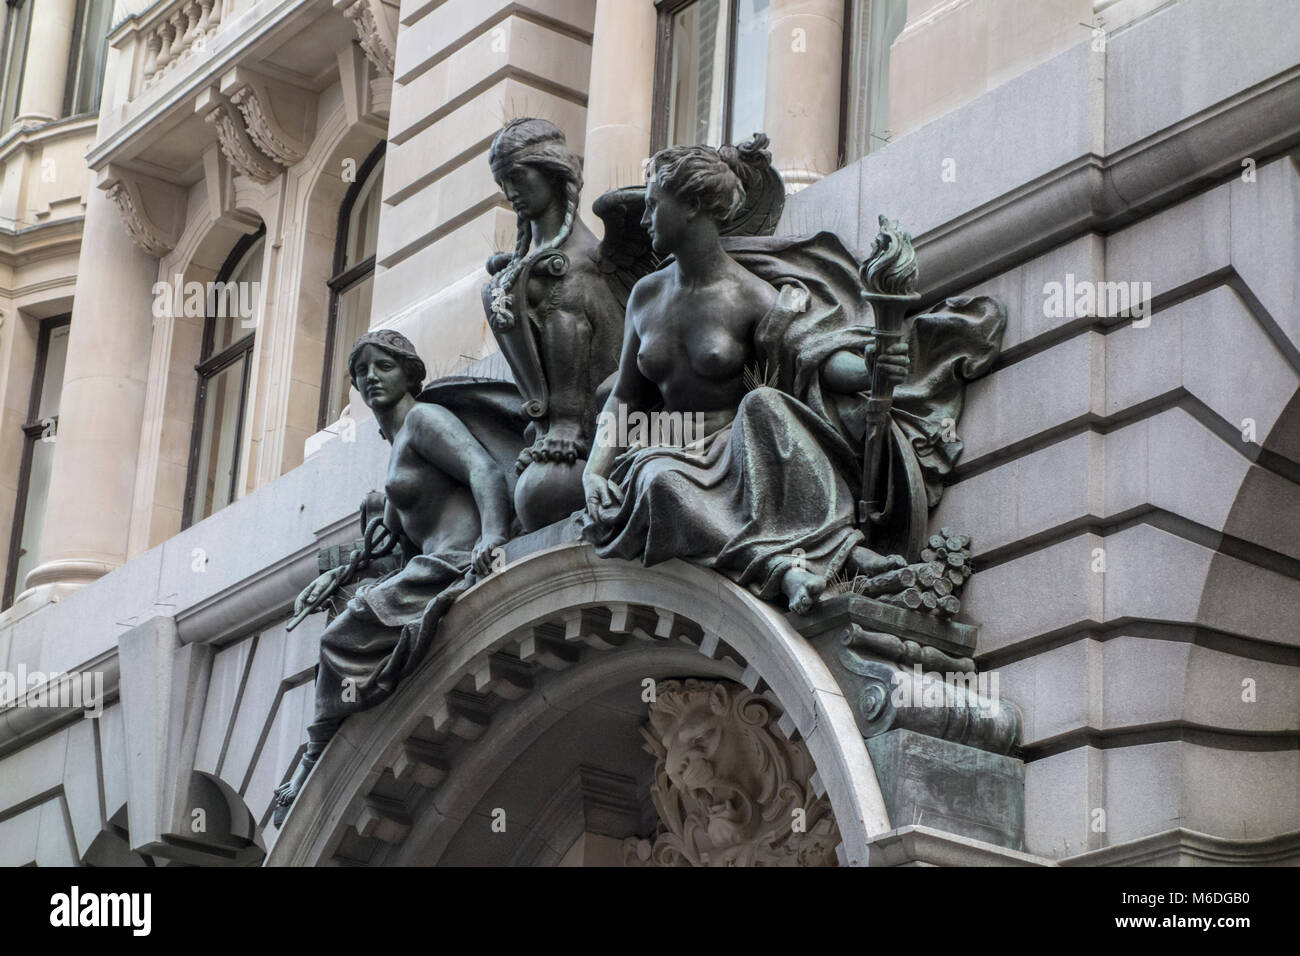 Bronze figures sculpture over entrance 24 - 28 Lombard Street, City of London, UK. 1910 - Stock Image